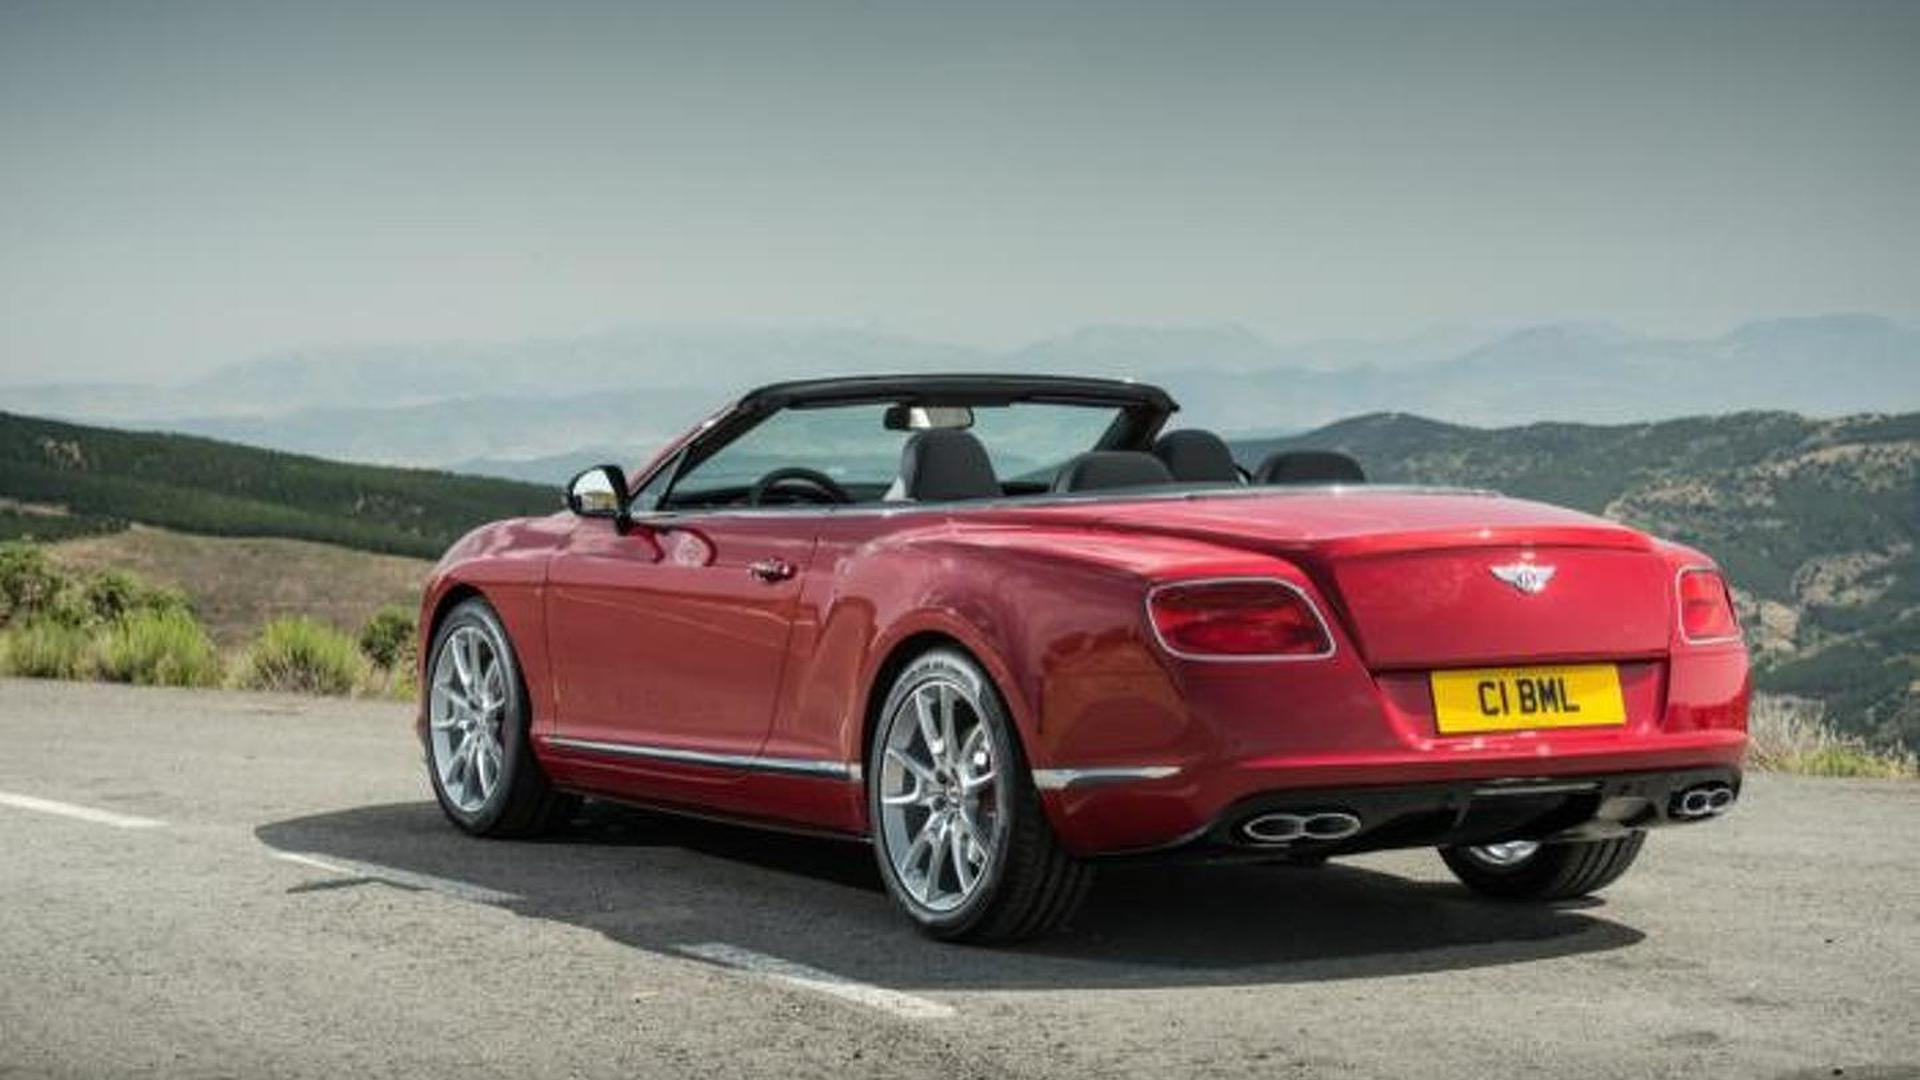 Bentley Continental Gt V8 S Revealed With 521 Bhp Videos Added